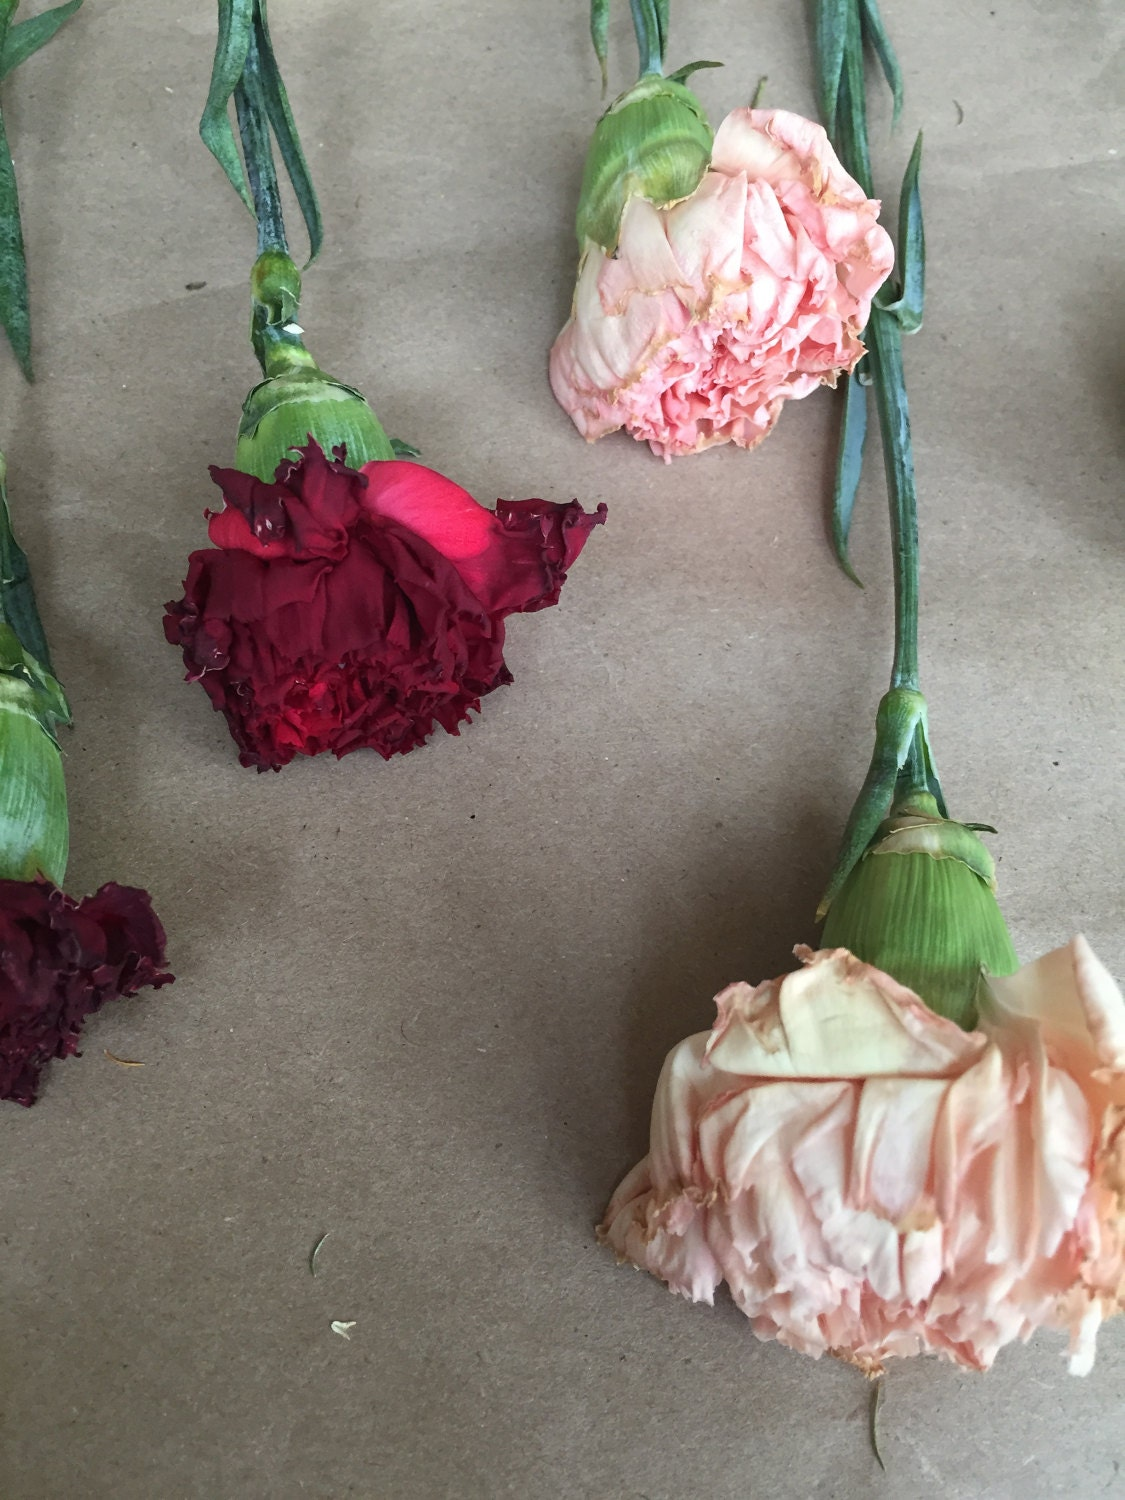 Partially Dried Carnation Flowers